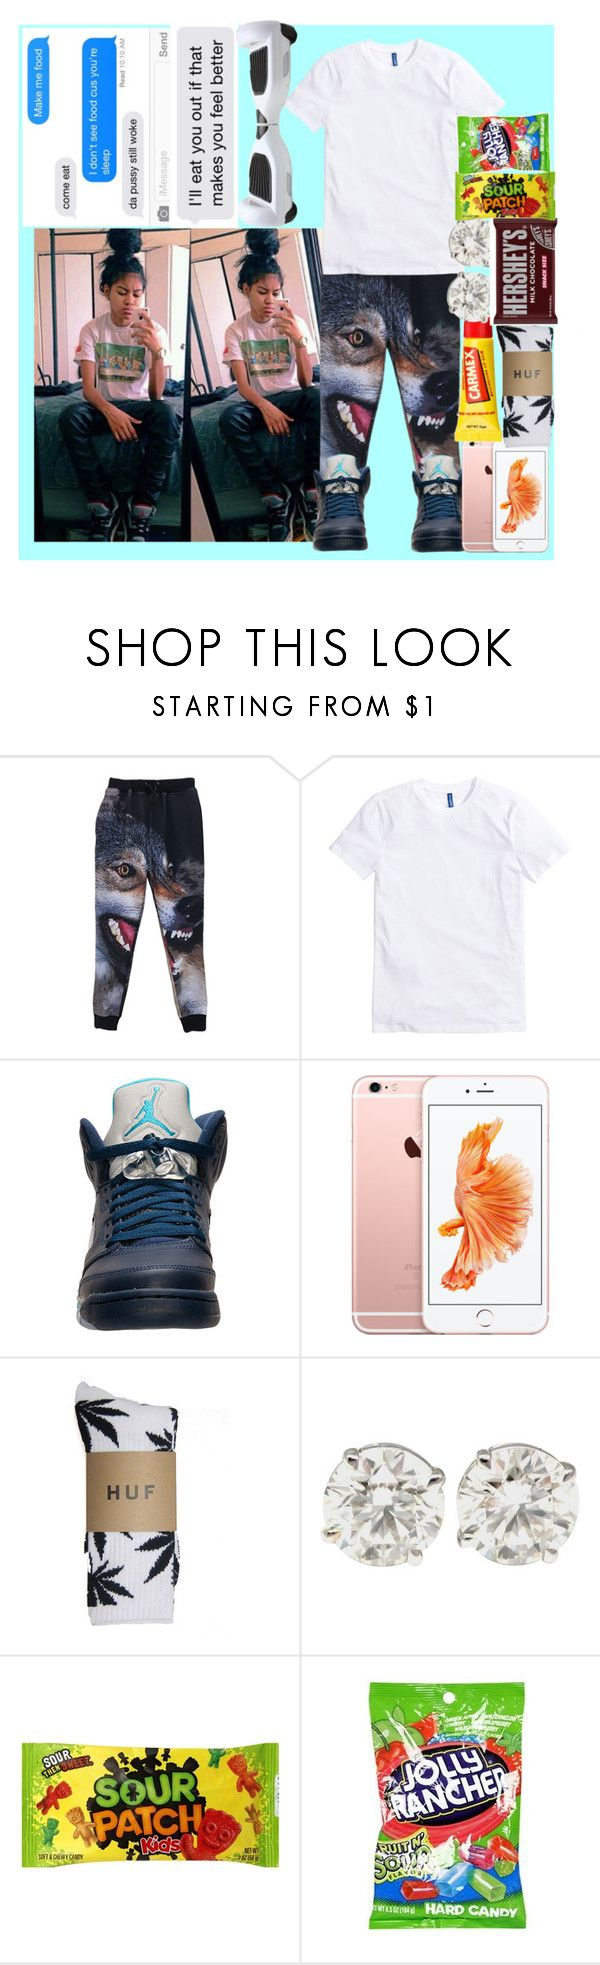 """""""I Need A Gf -Pouts- (Jasmine)"""" by bigdaddykeke ❤ liked on Polyvore featuring Retrò, HUF, Carmex, Hershey's and Hard Candy"""